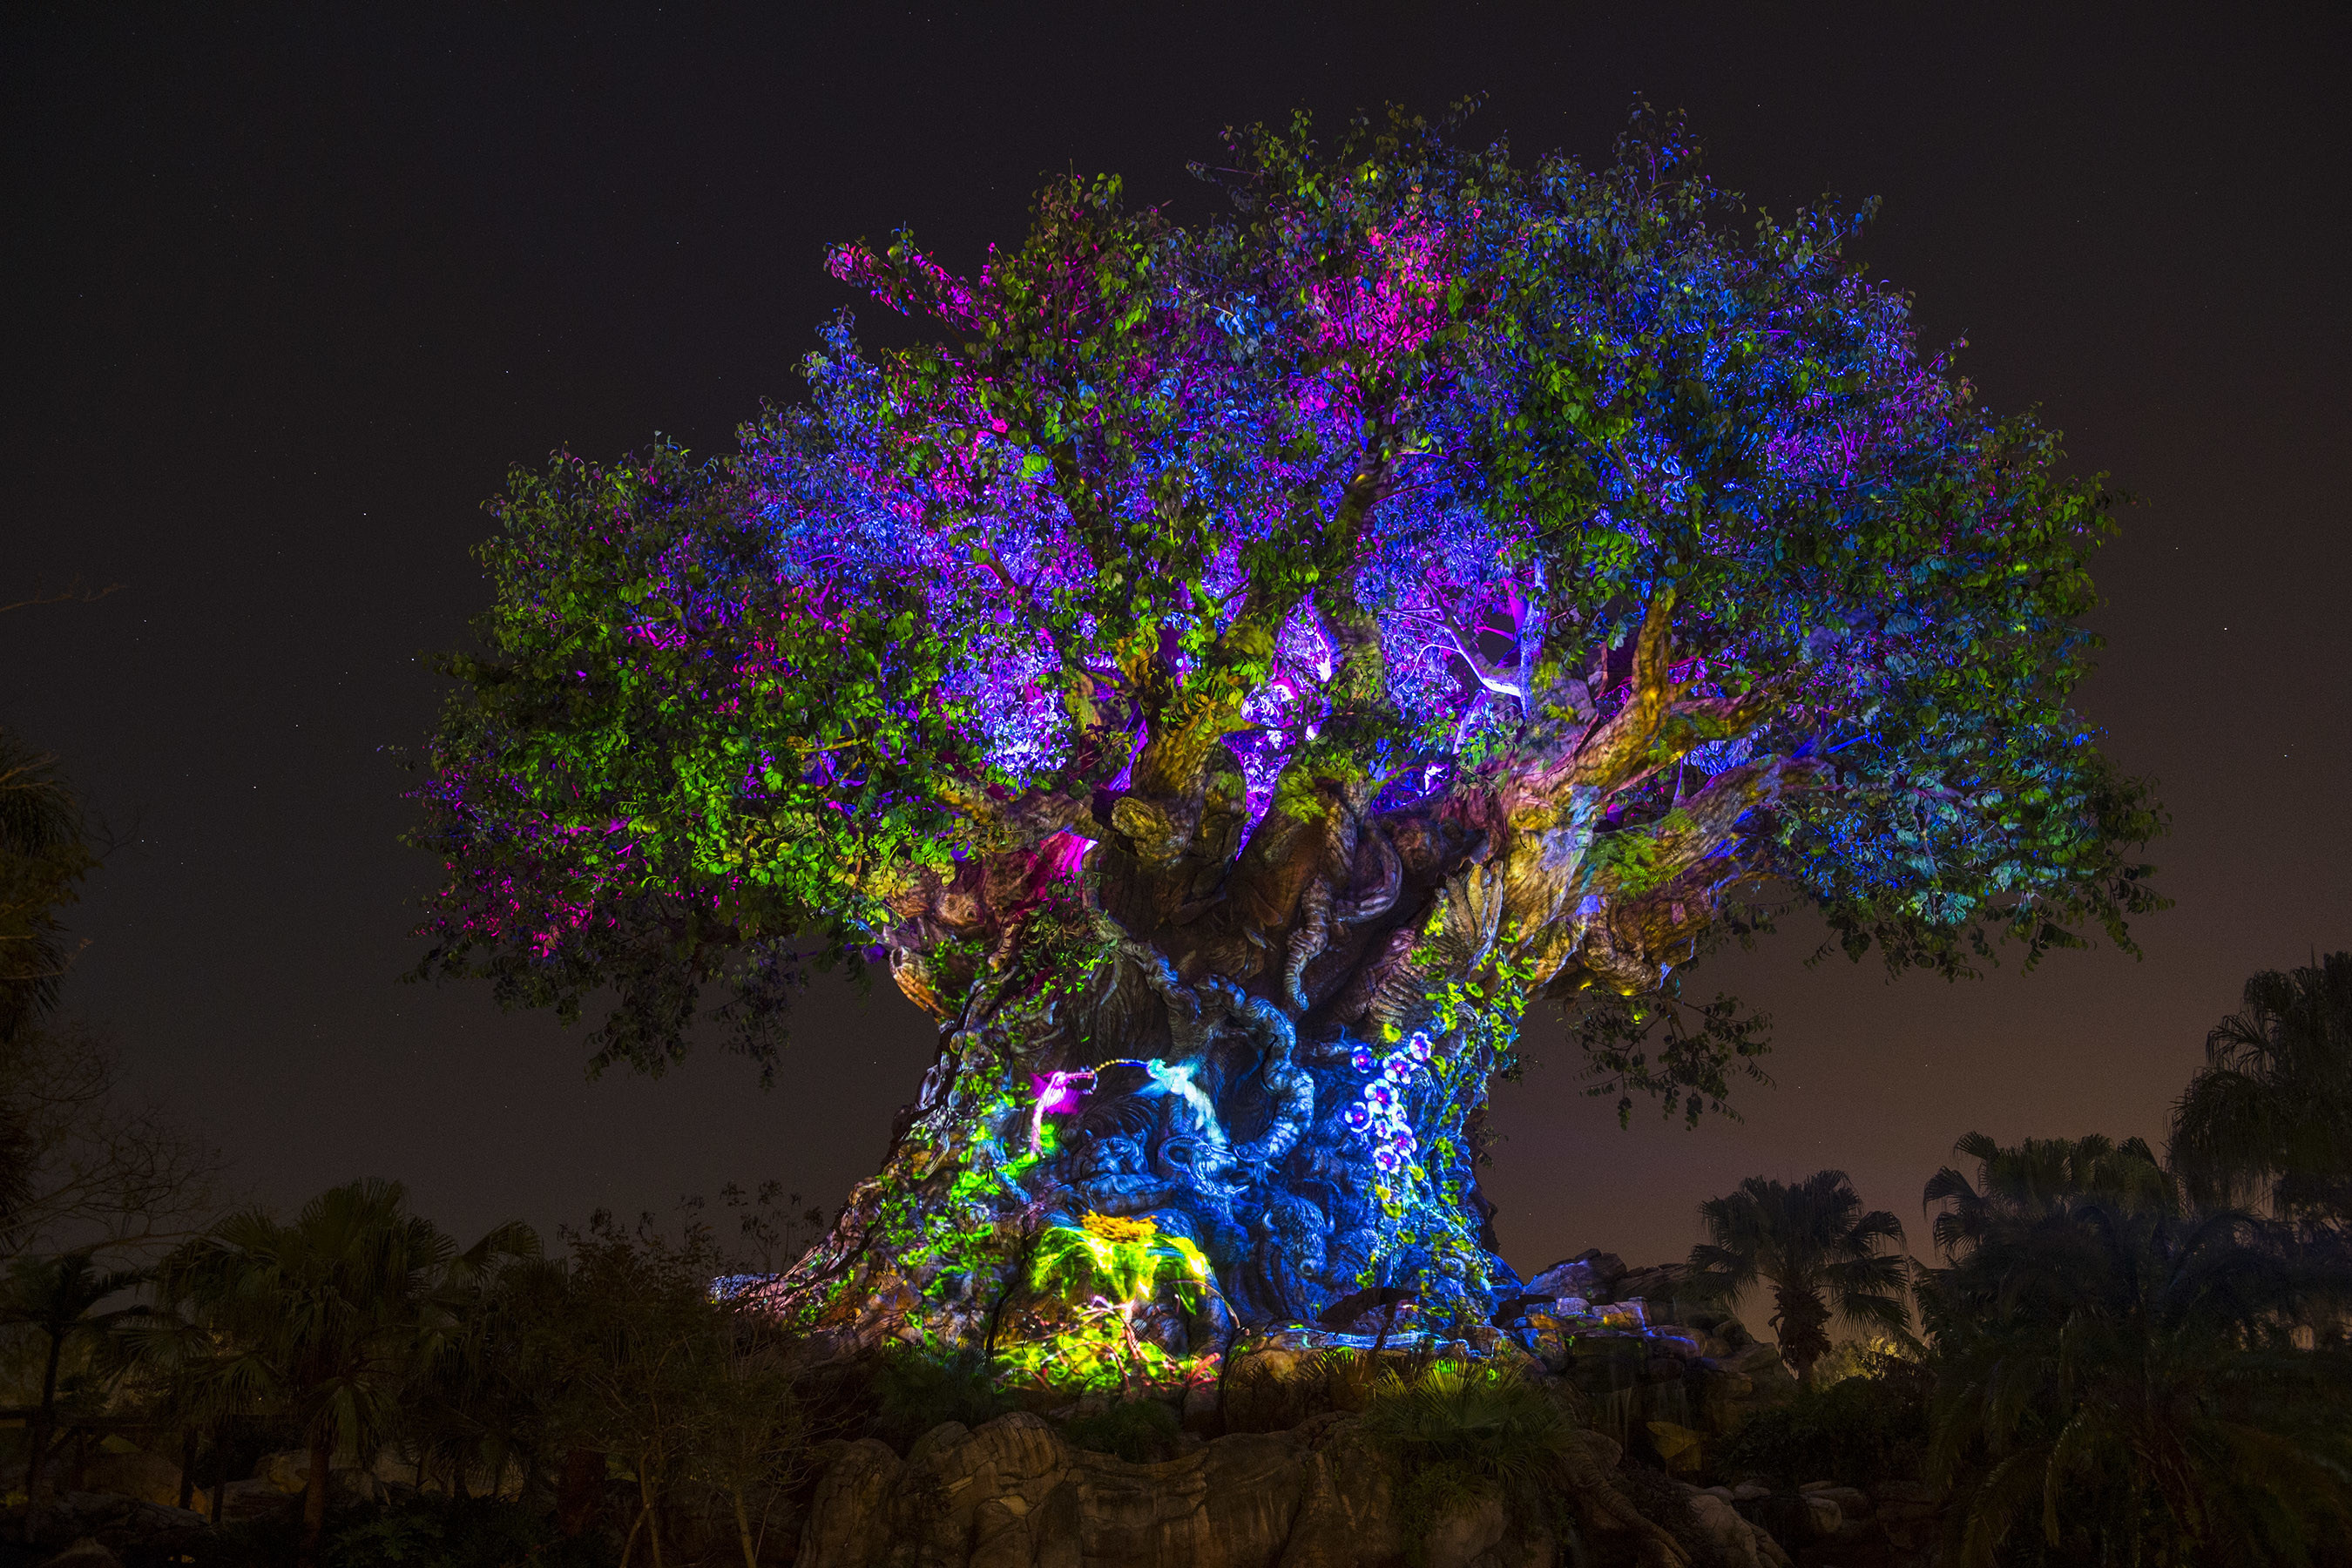 This Summer Magical New Experiences Will Debut Across All Four Walt Disney World Theme Parks